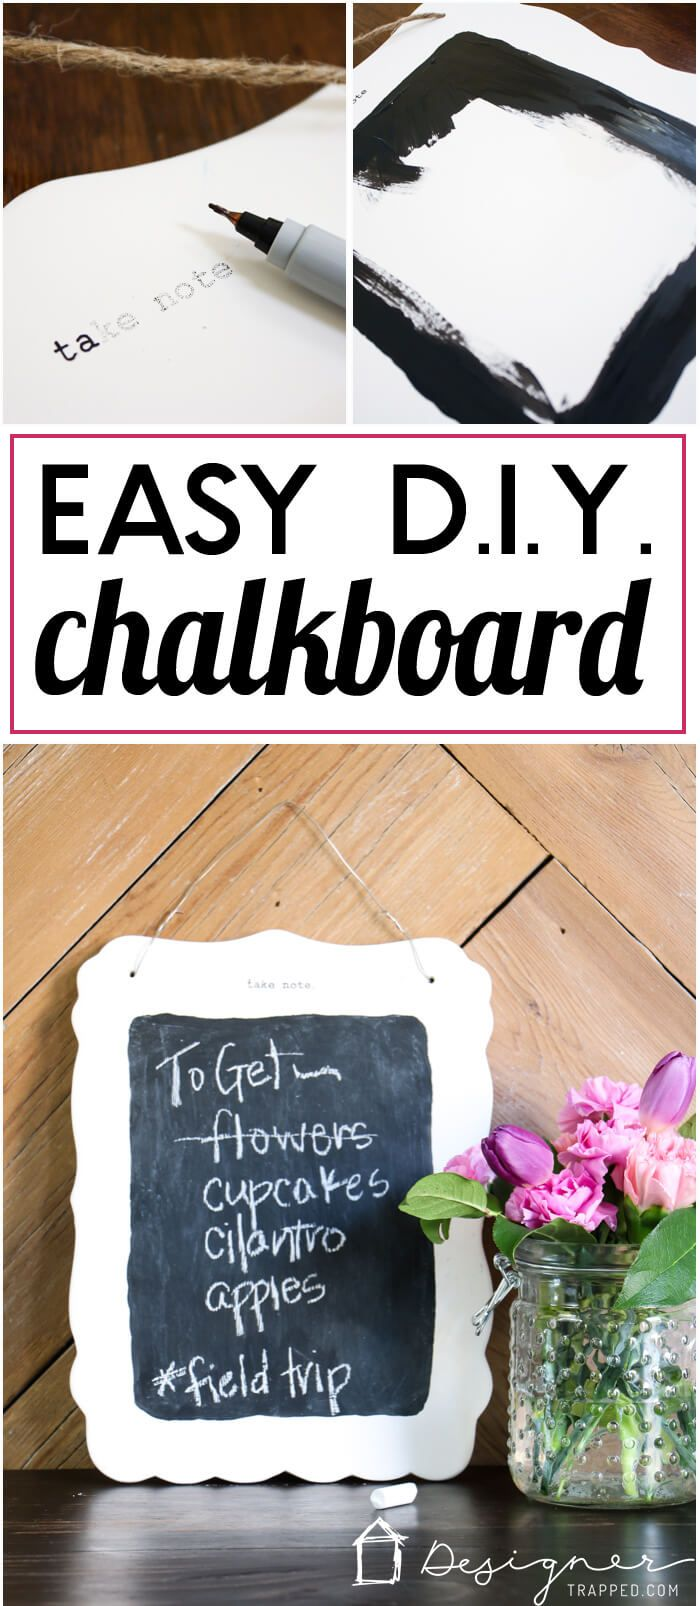 I forget things ALL THE TIME. This DIY small chalkboard is so cute and is perfect for keeping track of things you can't forget to do. Next up on my to do list...make a DIY chalkboard, lol!